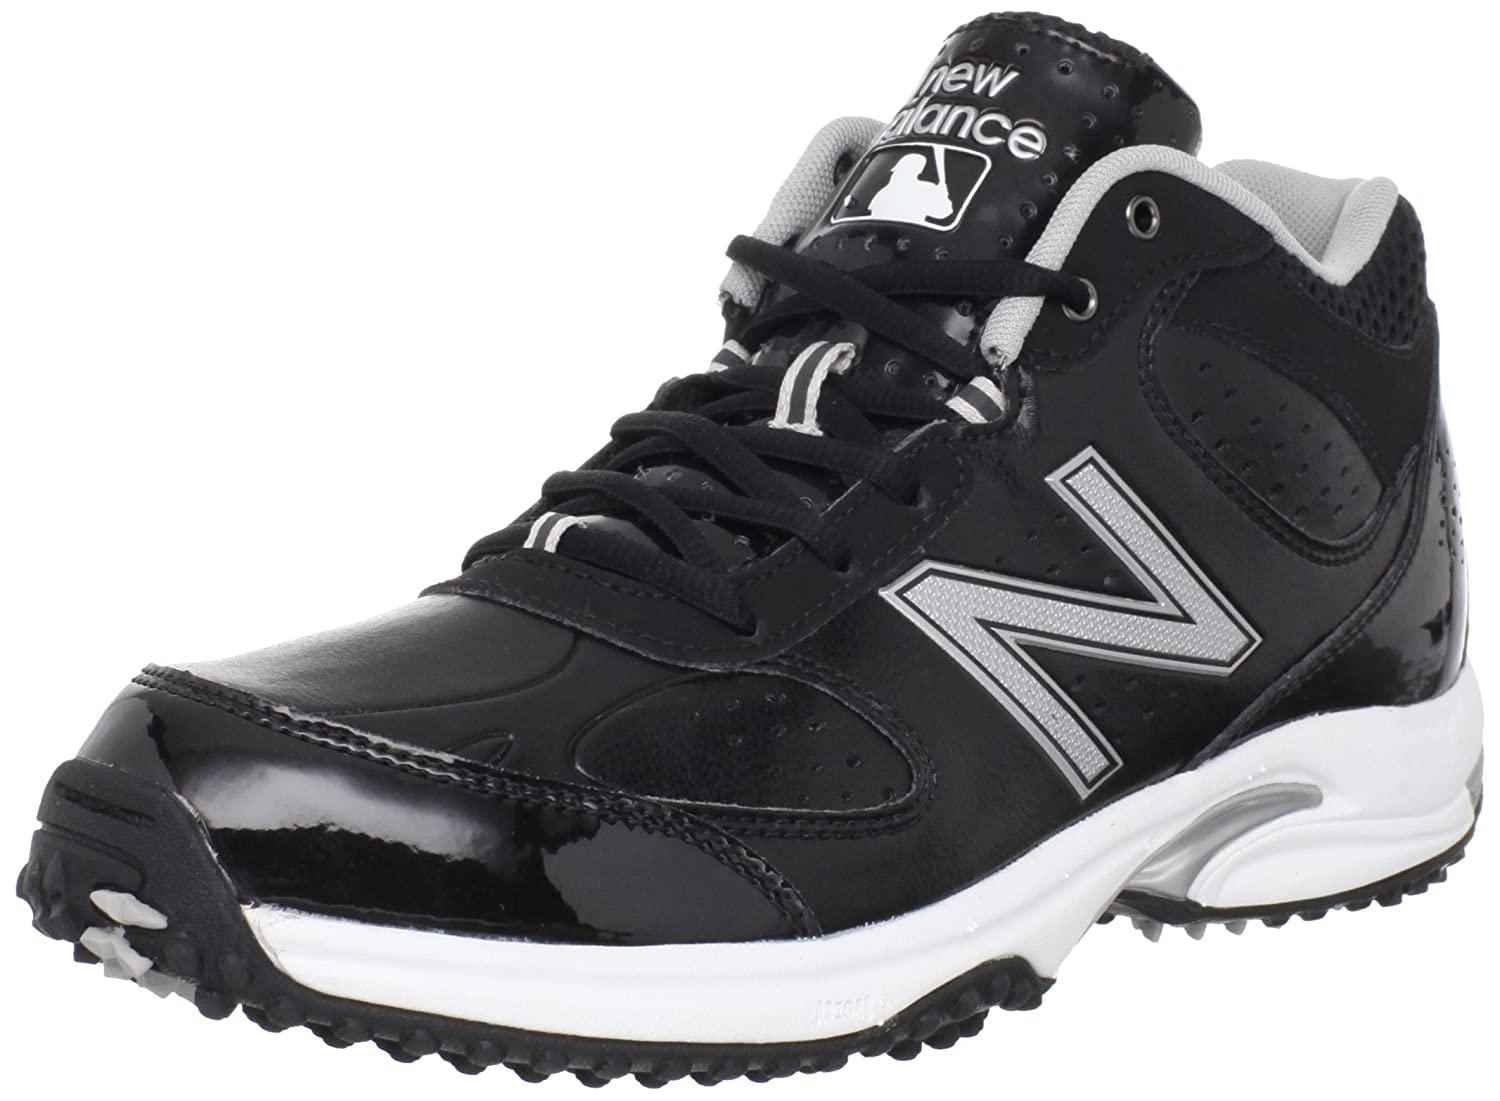 New Balance Spikes Baseball New Balance Men's Baseball